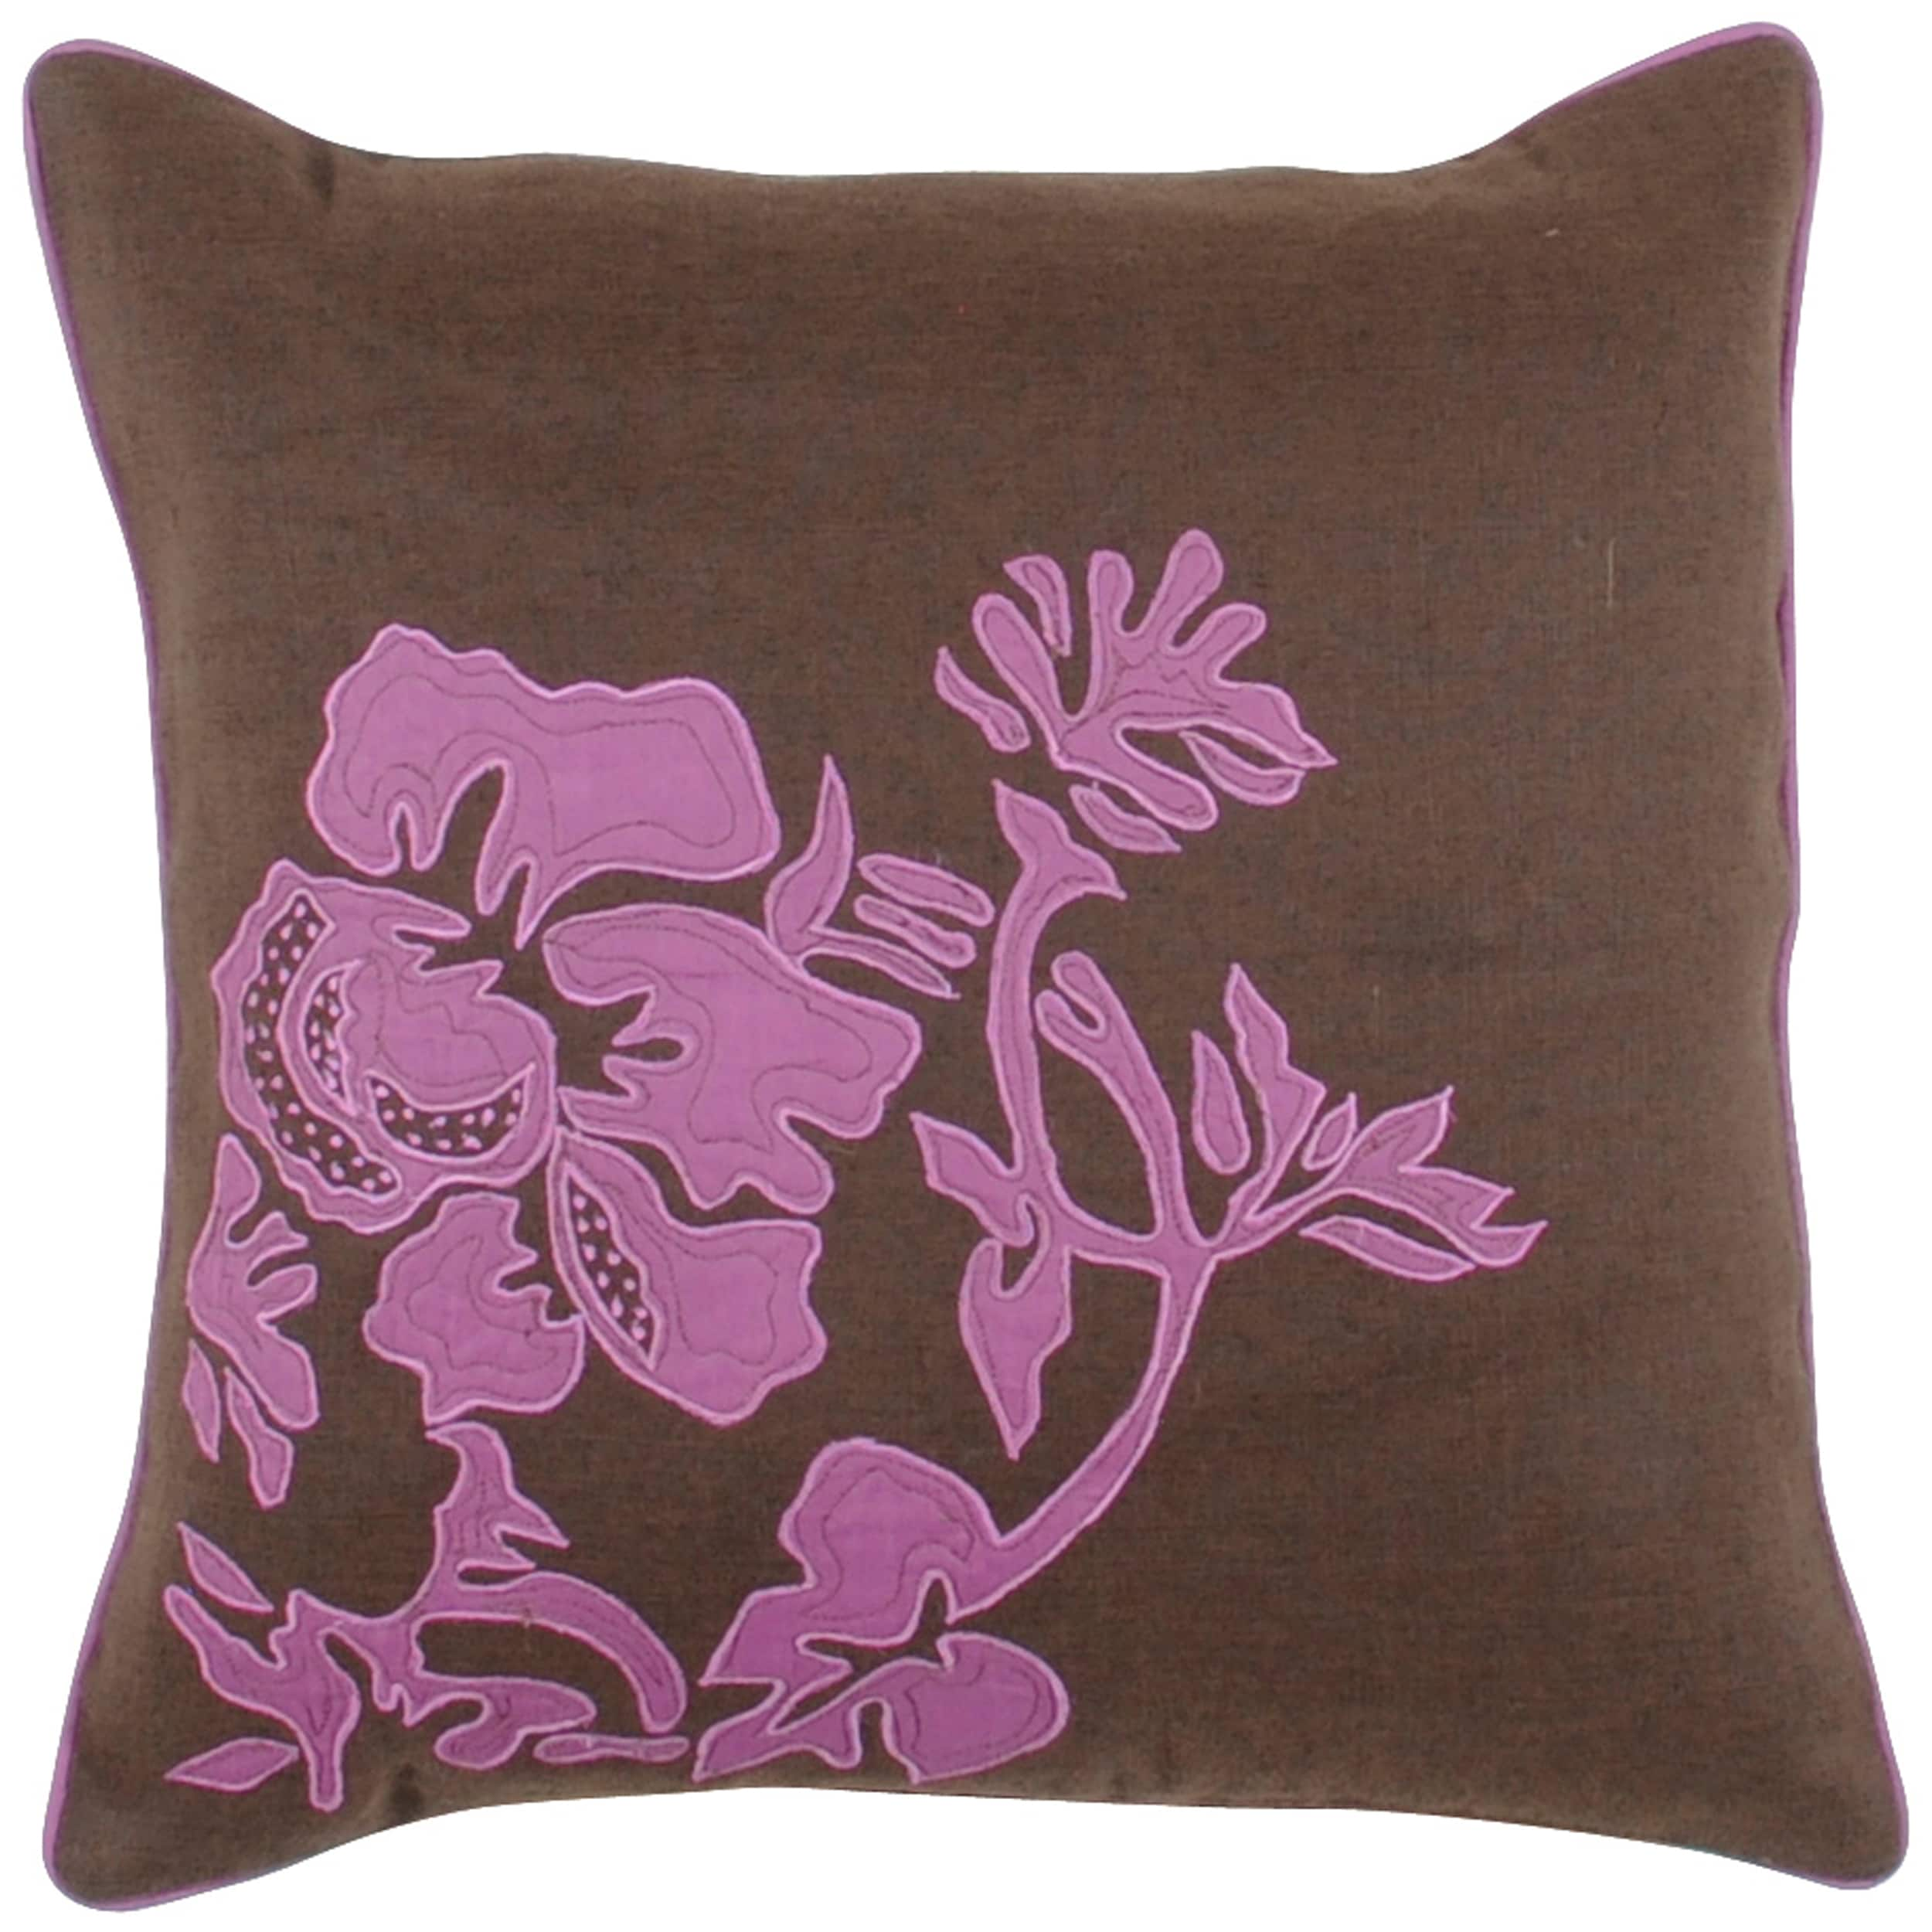 Square Decorative Liverpool Pillow